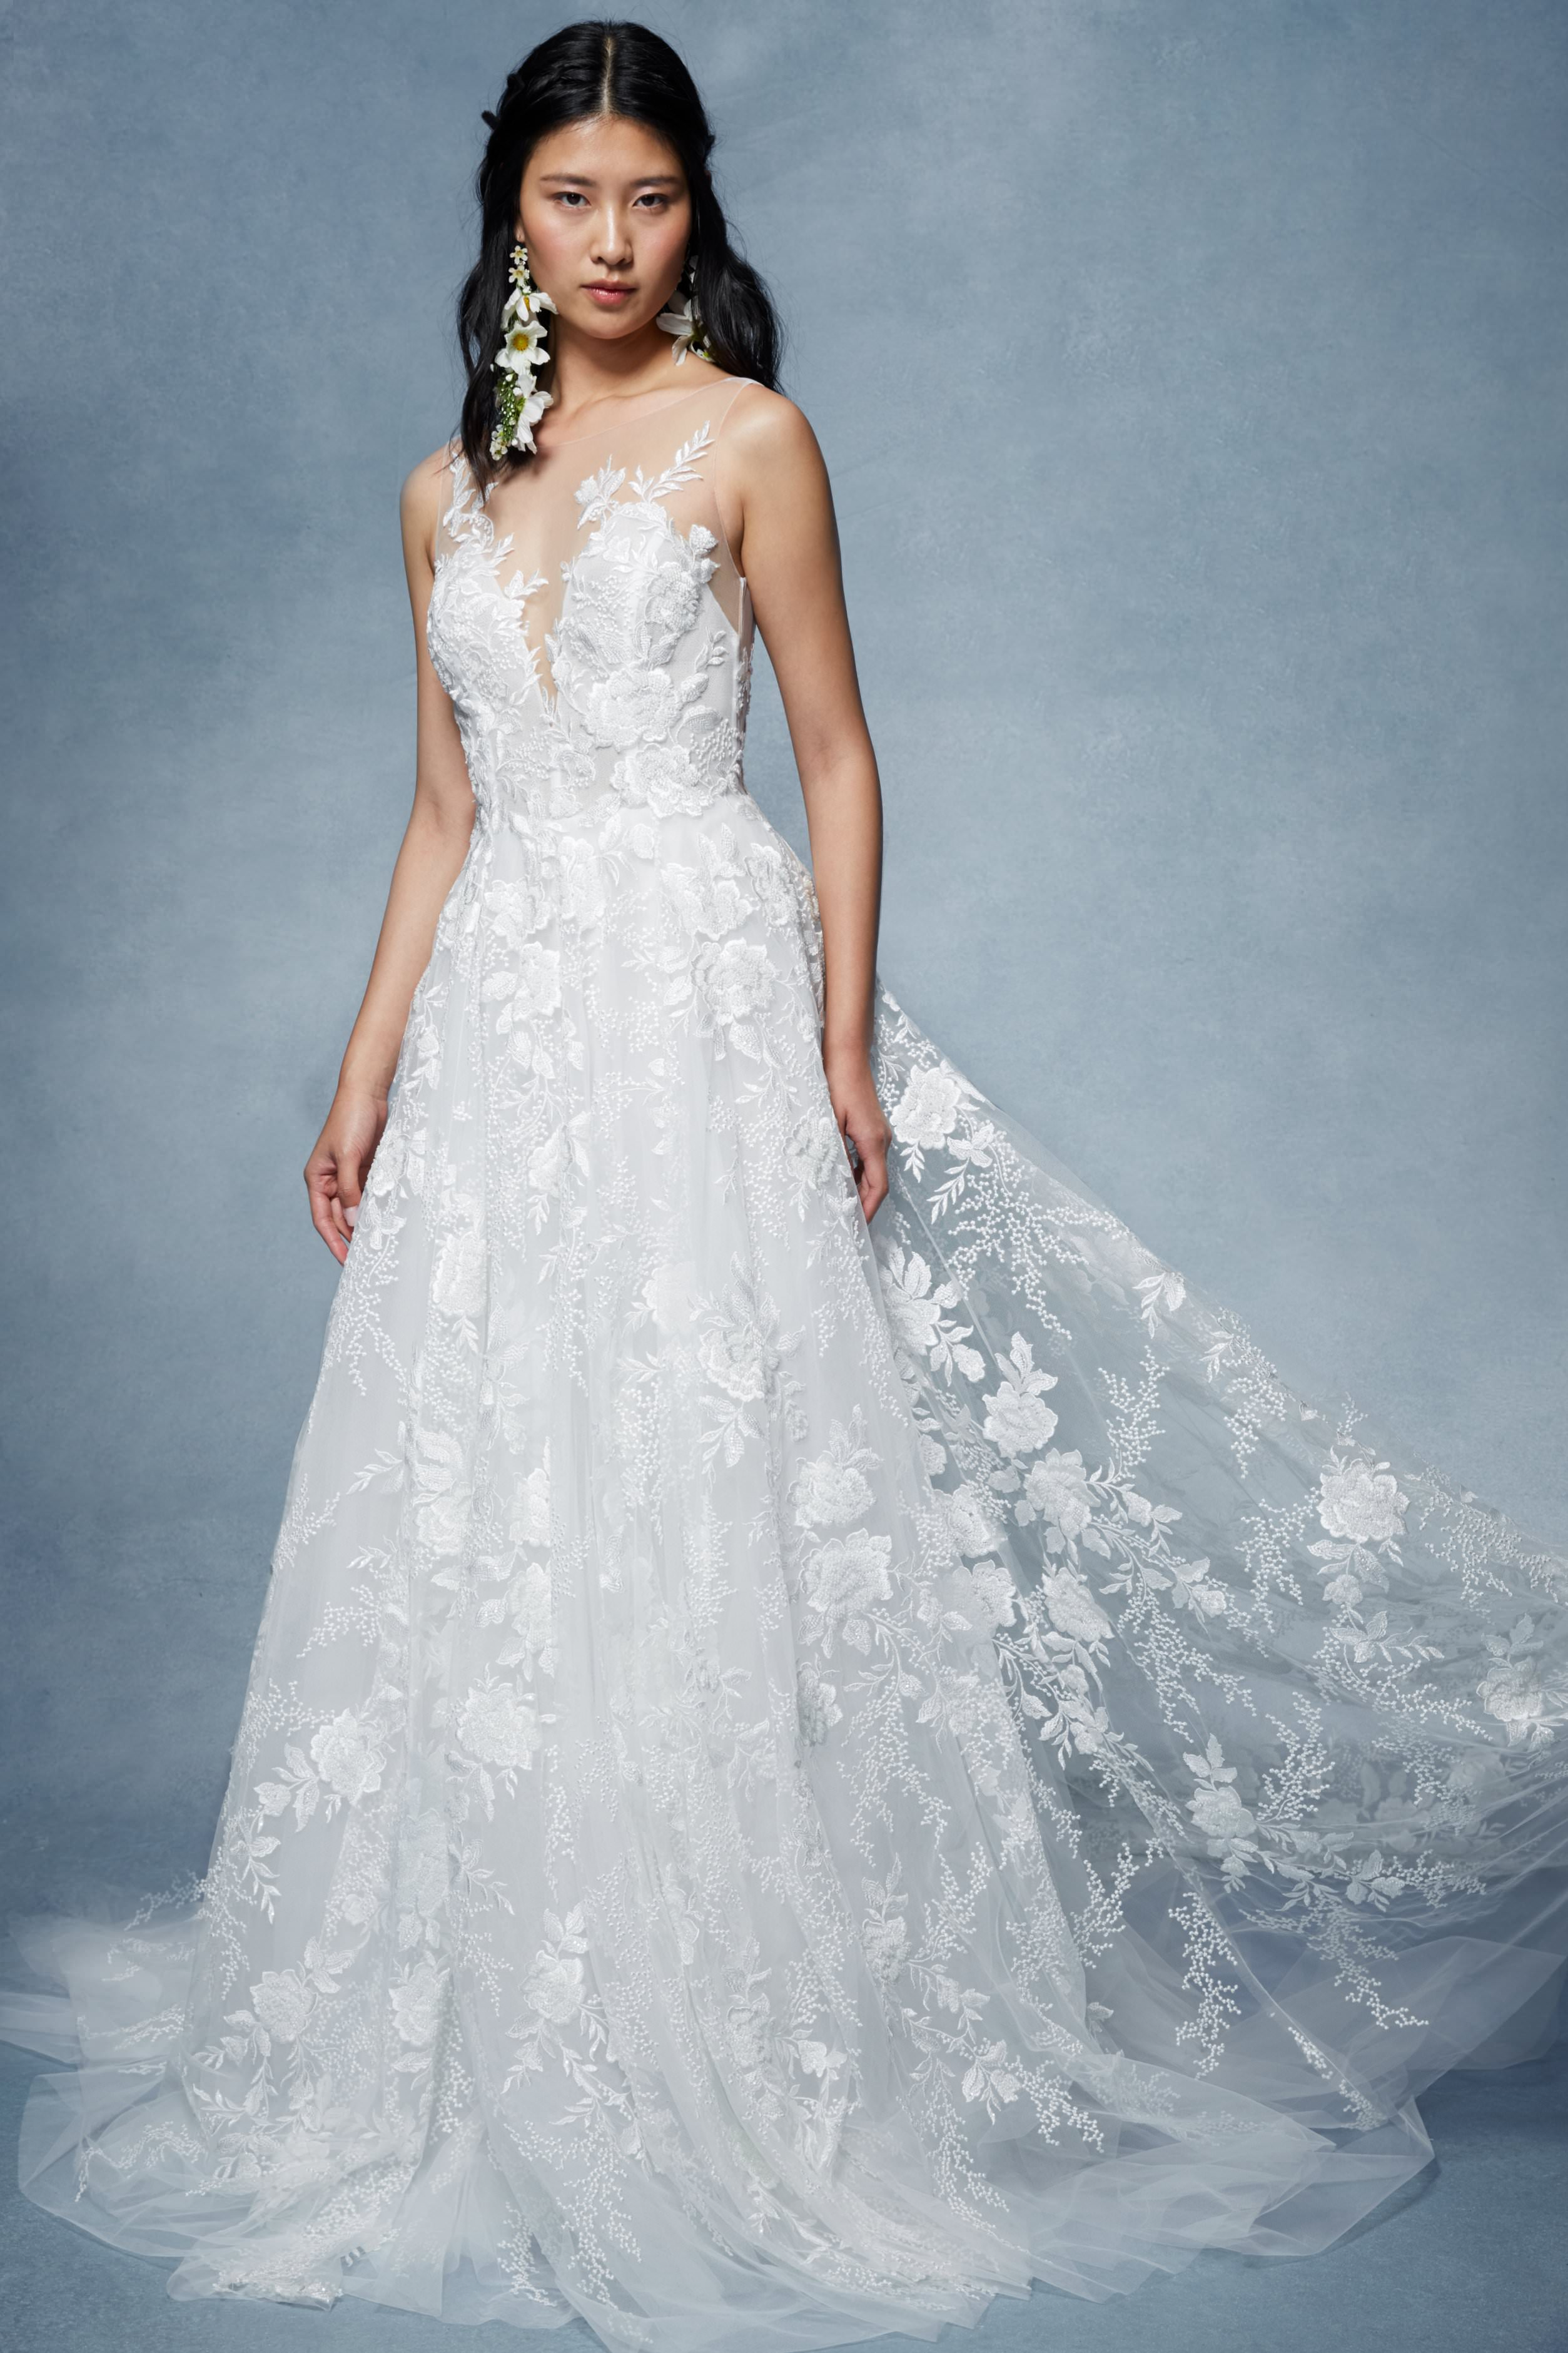 Sky by Marchesa Notte. Marchesa in San Diego at The White Flower BRidal Boutique.